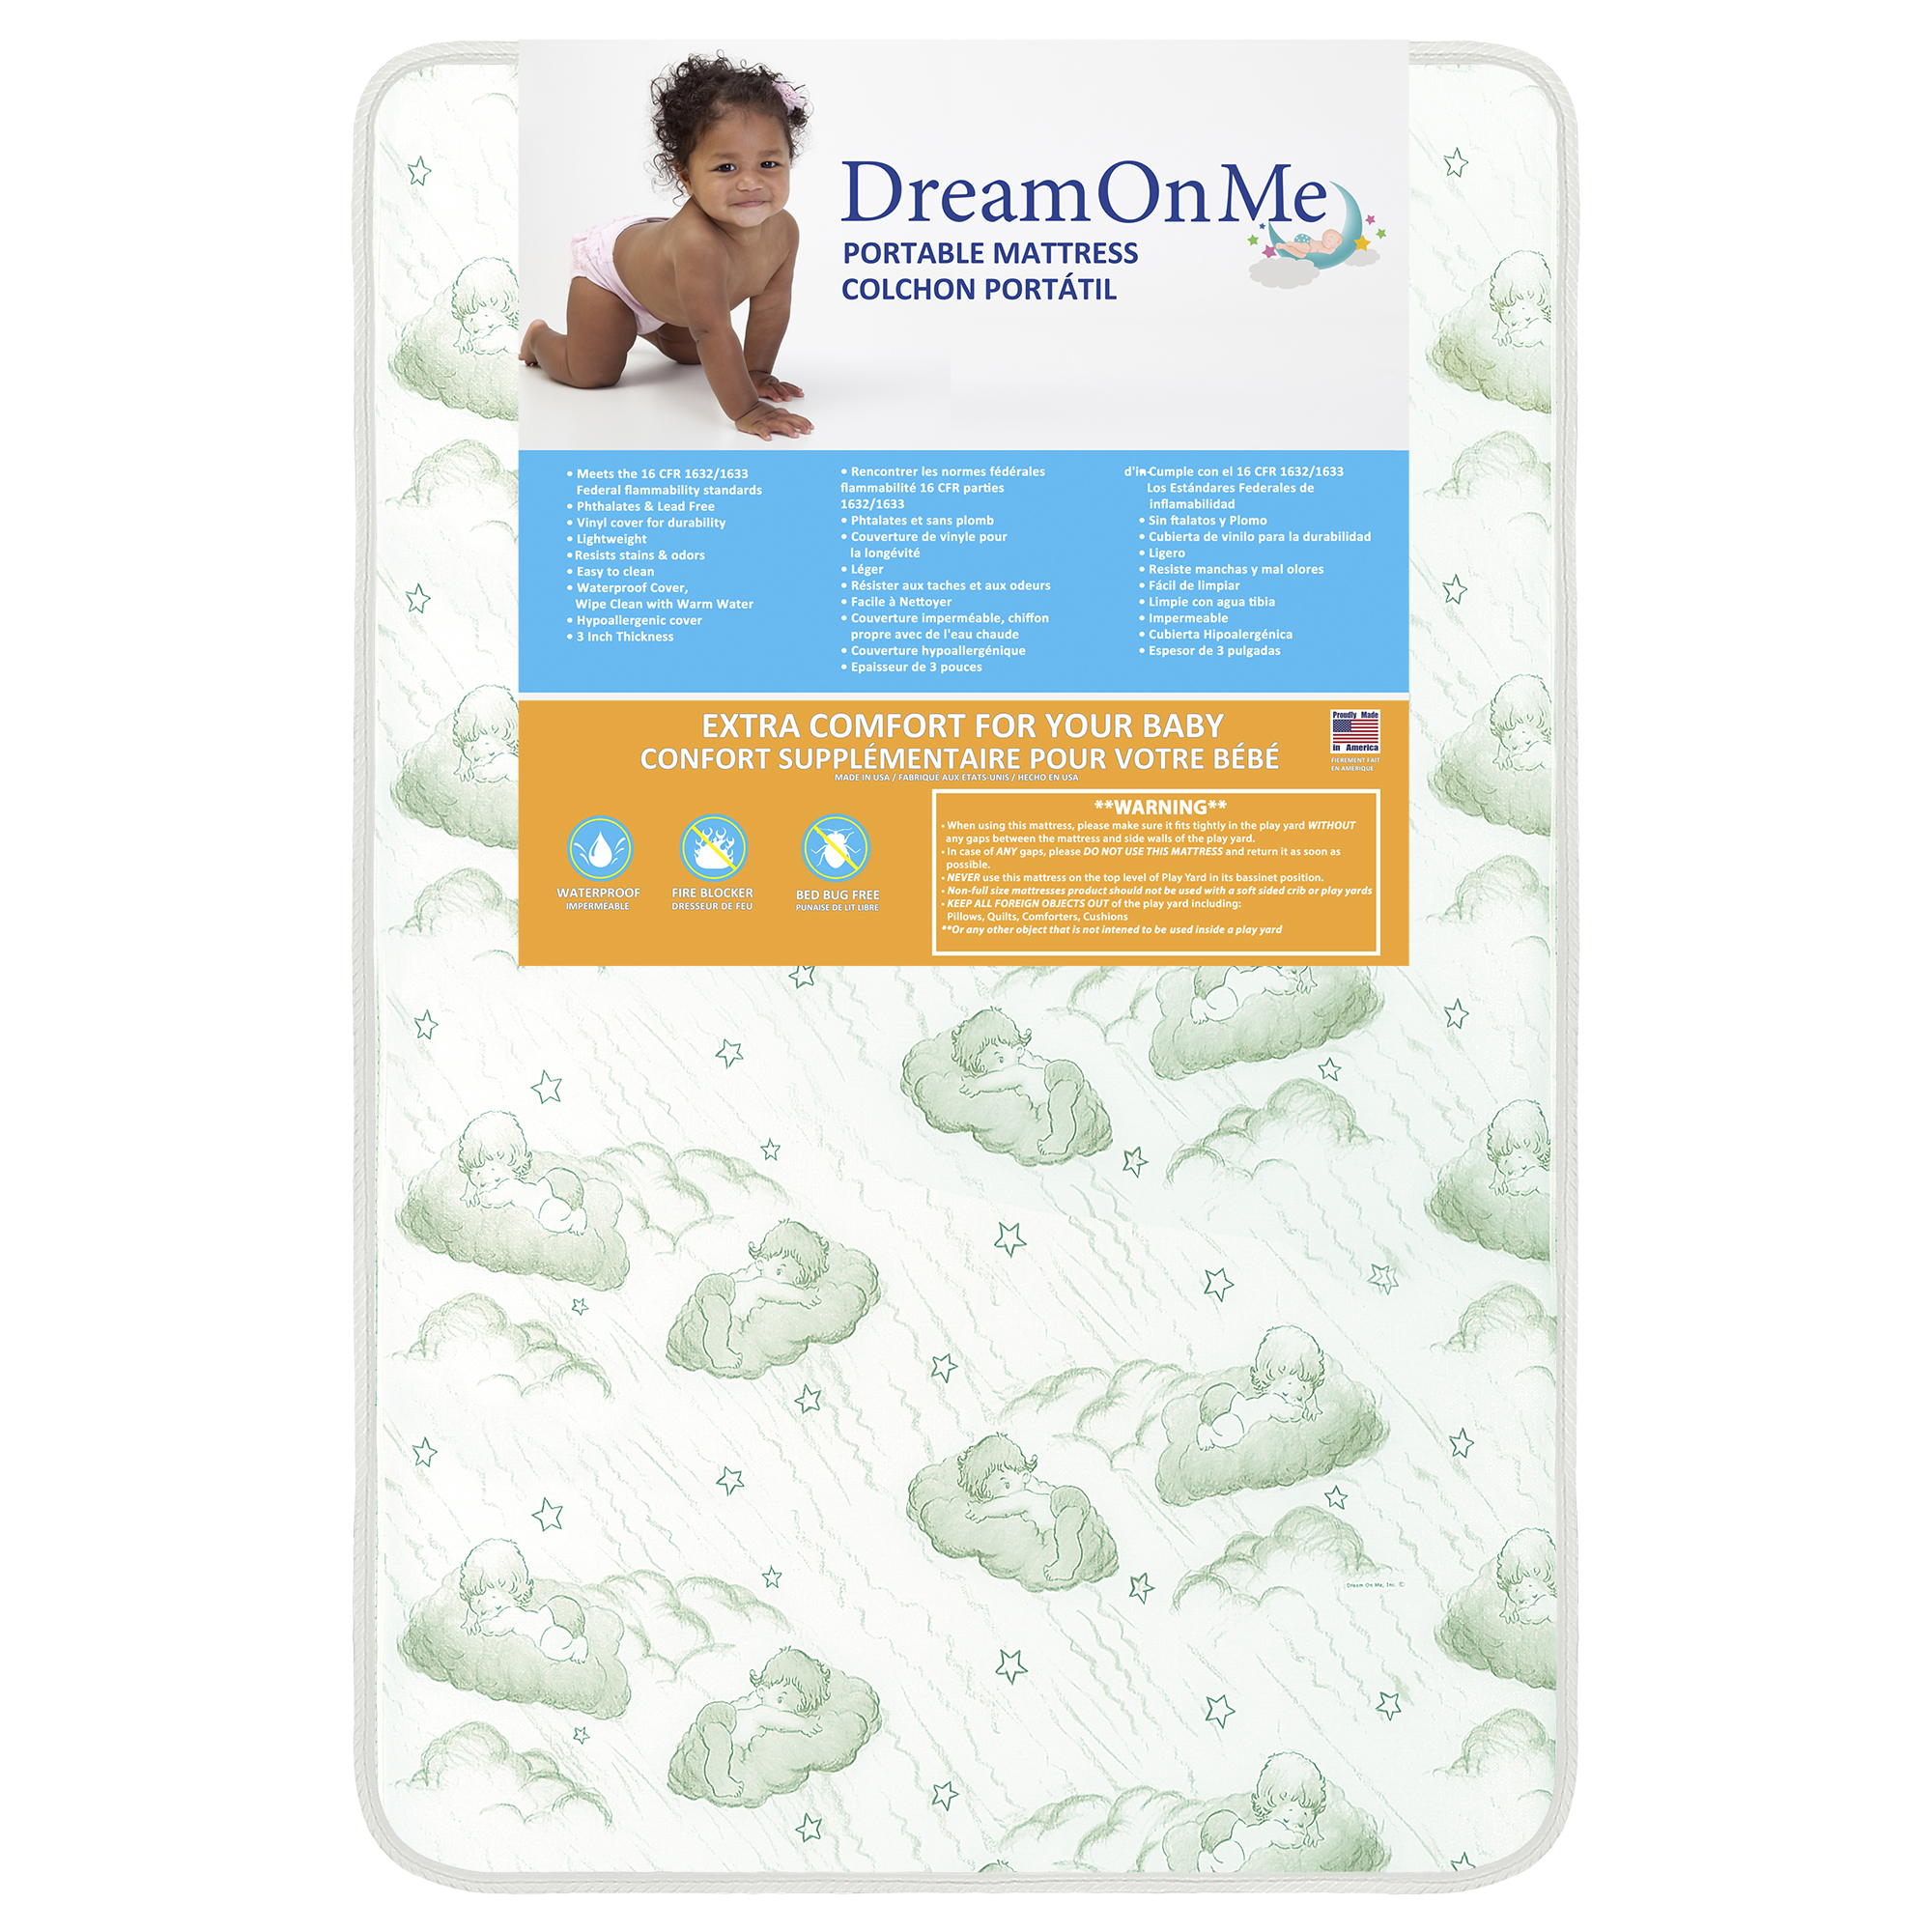 Dream On Me Baby Suite 300 Firm Play yard Mattress Square Corner